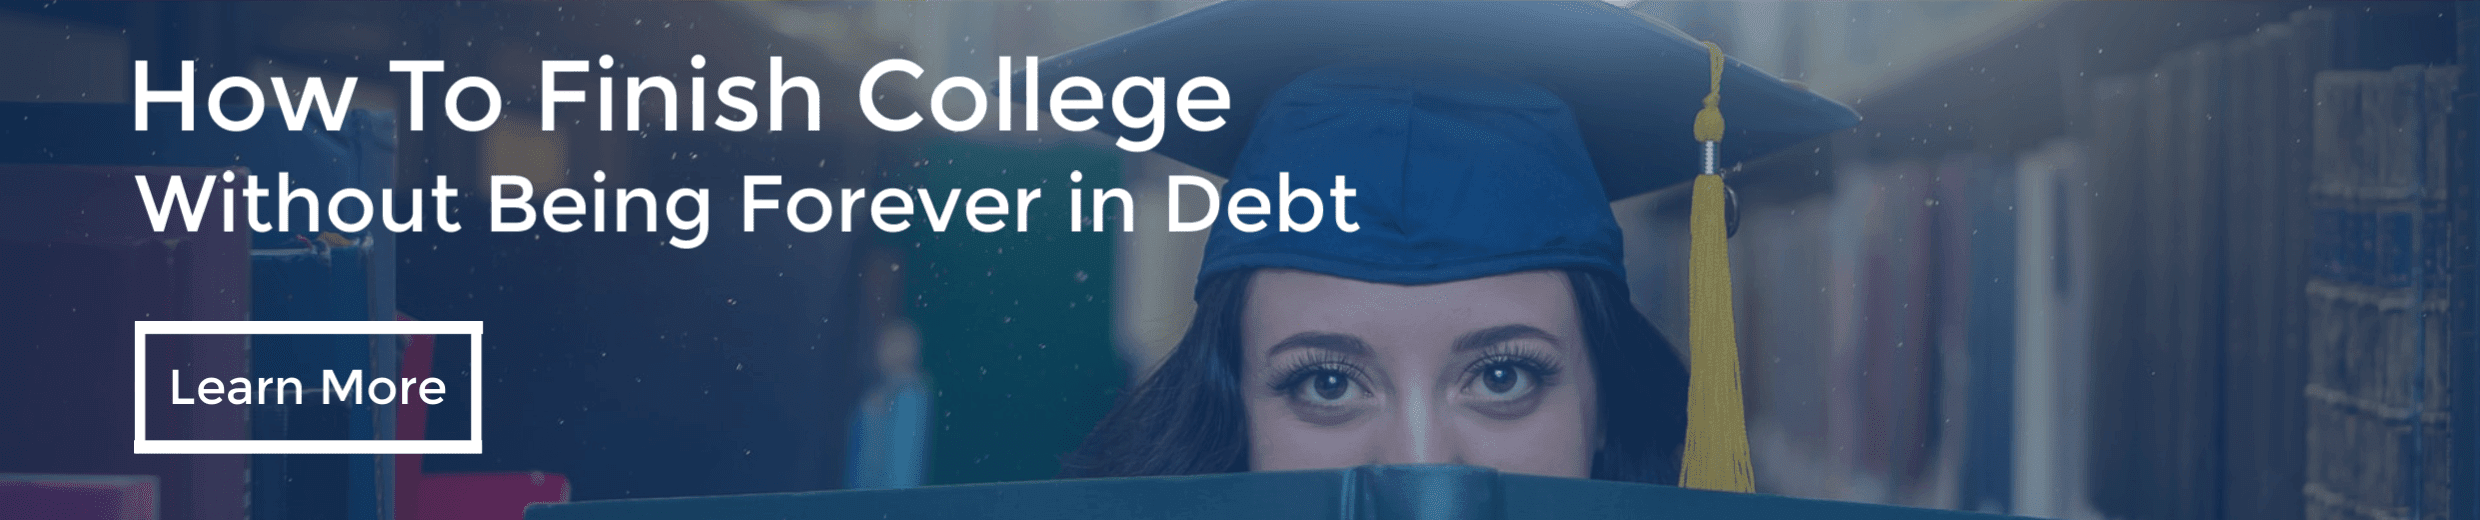 How to Finish College Without Being Forever in Debt